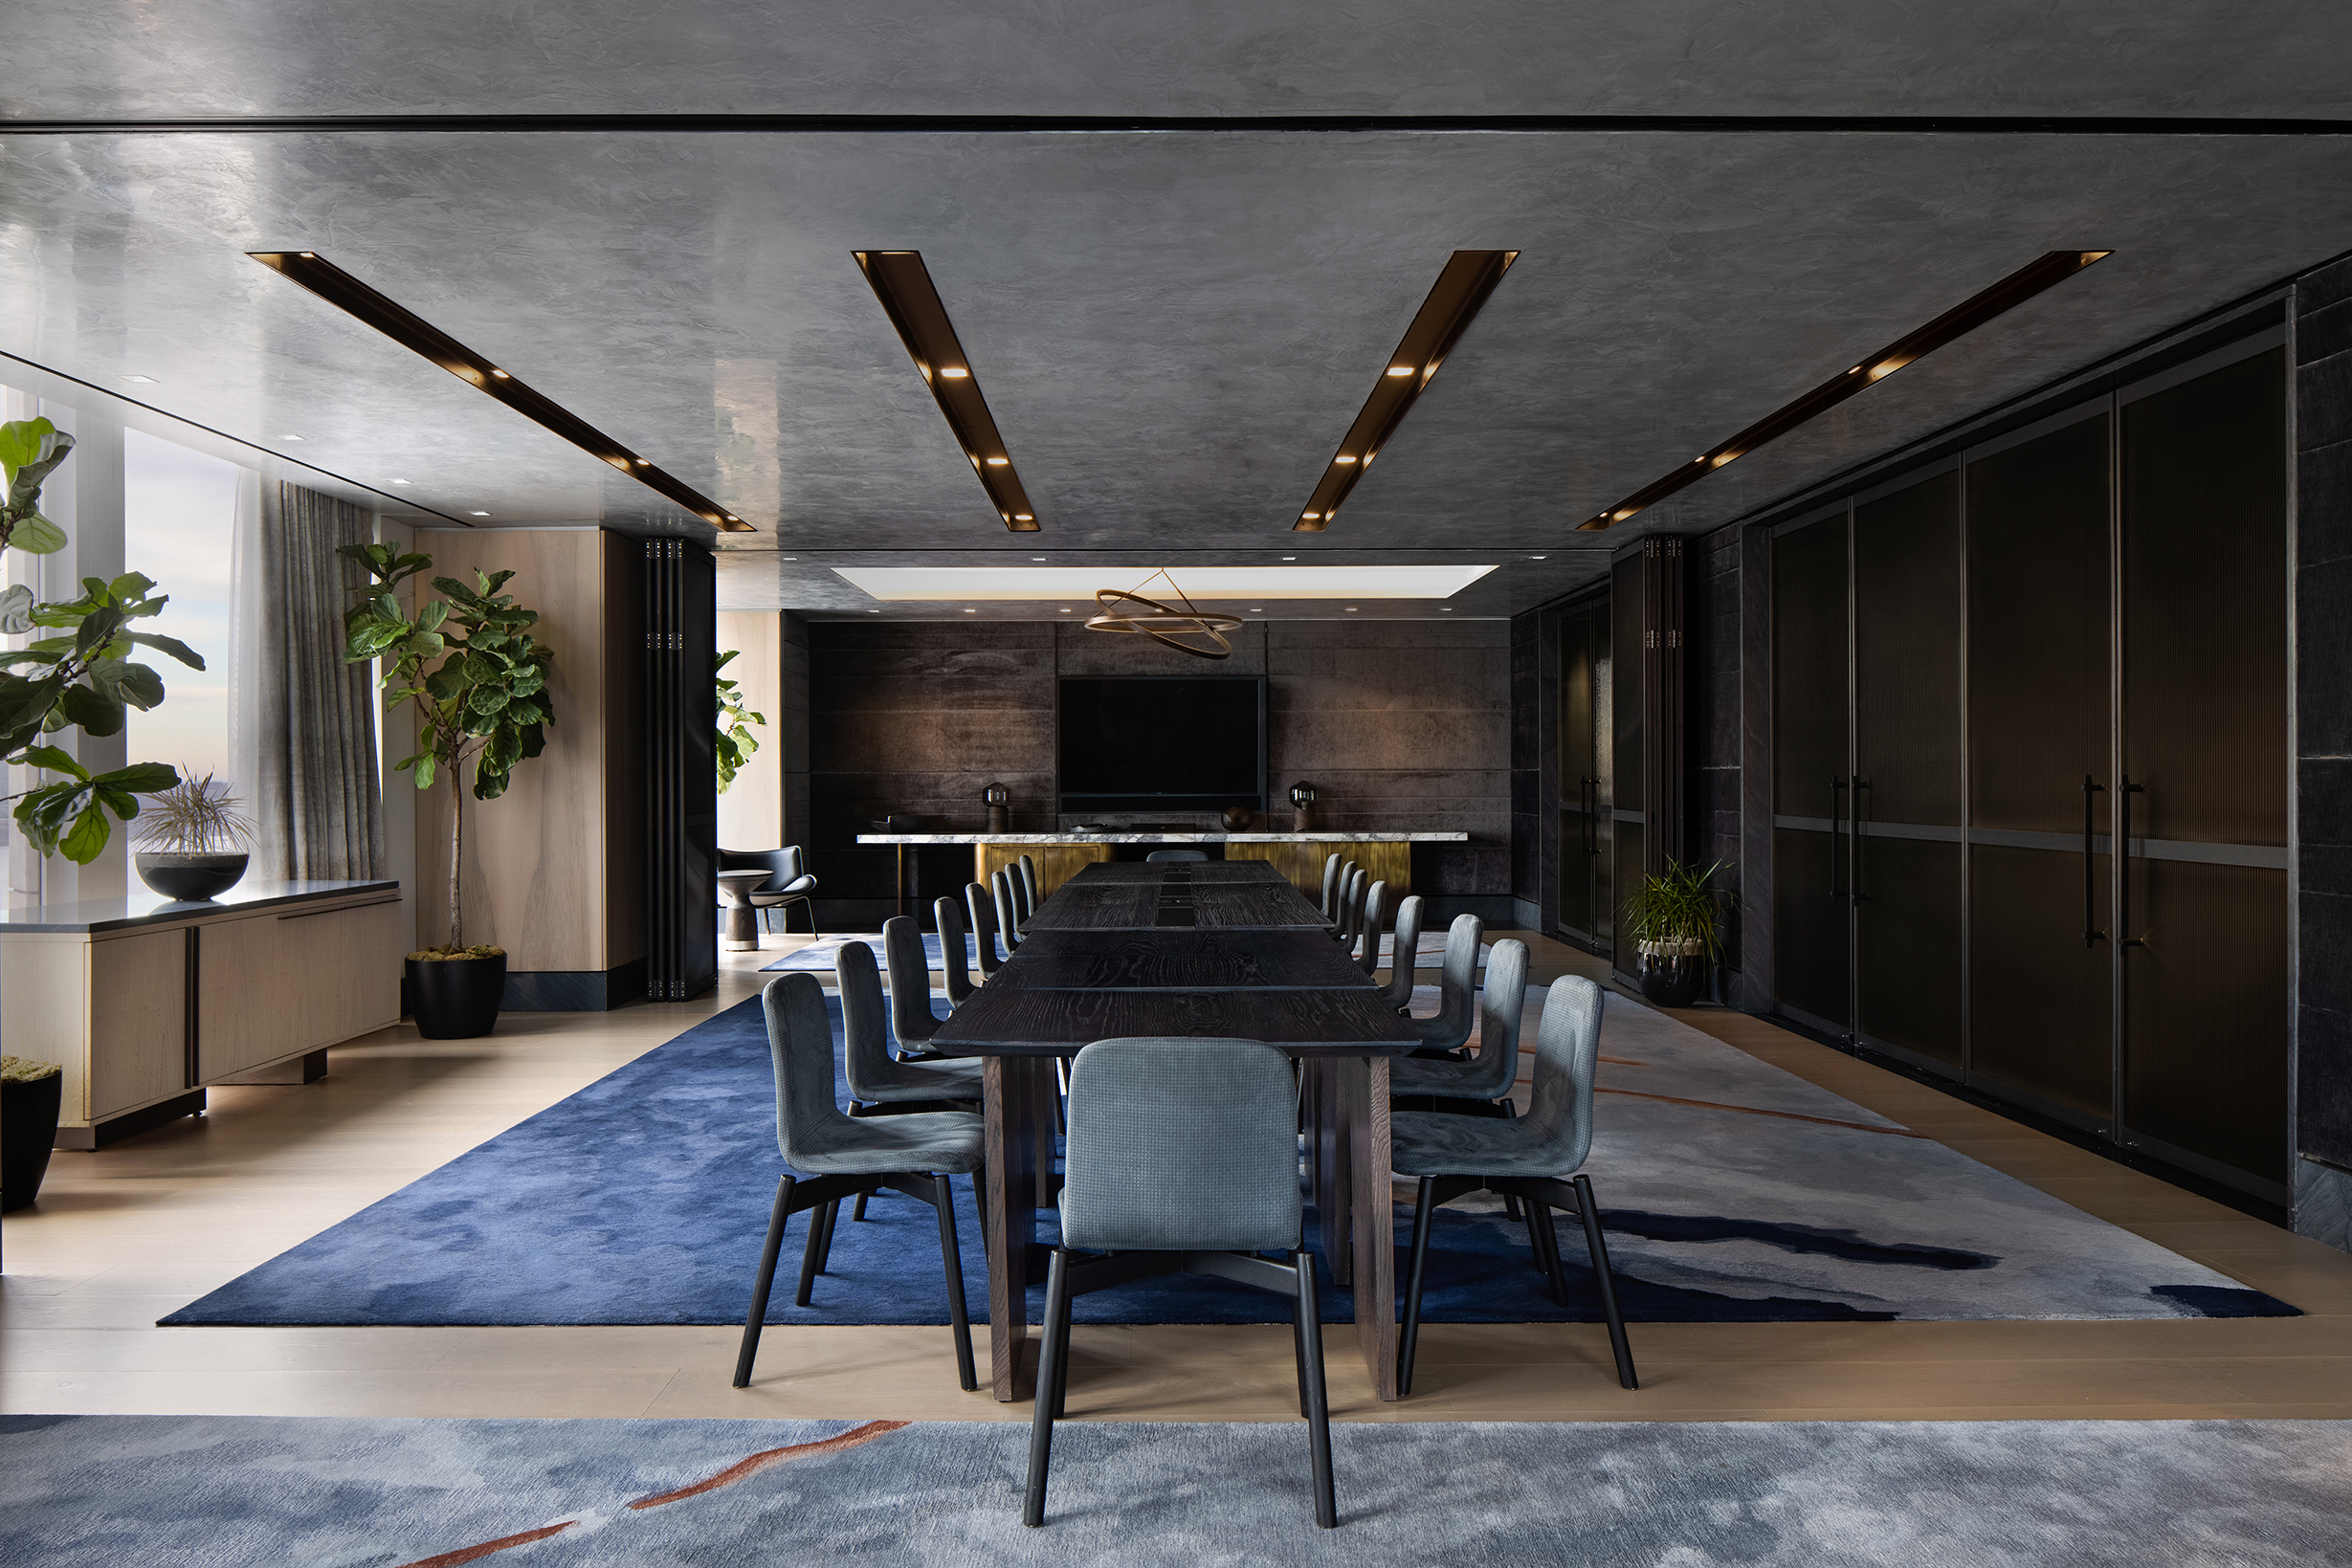 <private dining room table facing a screen